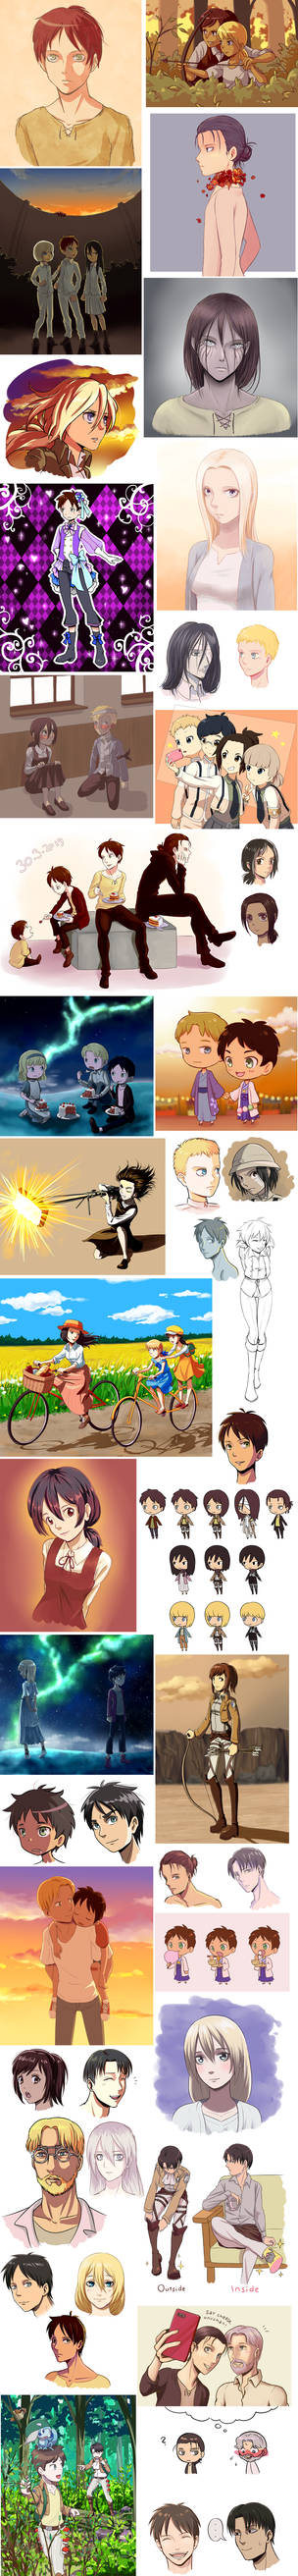 Attack on titan dump 8